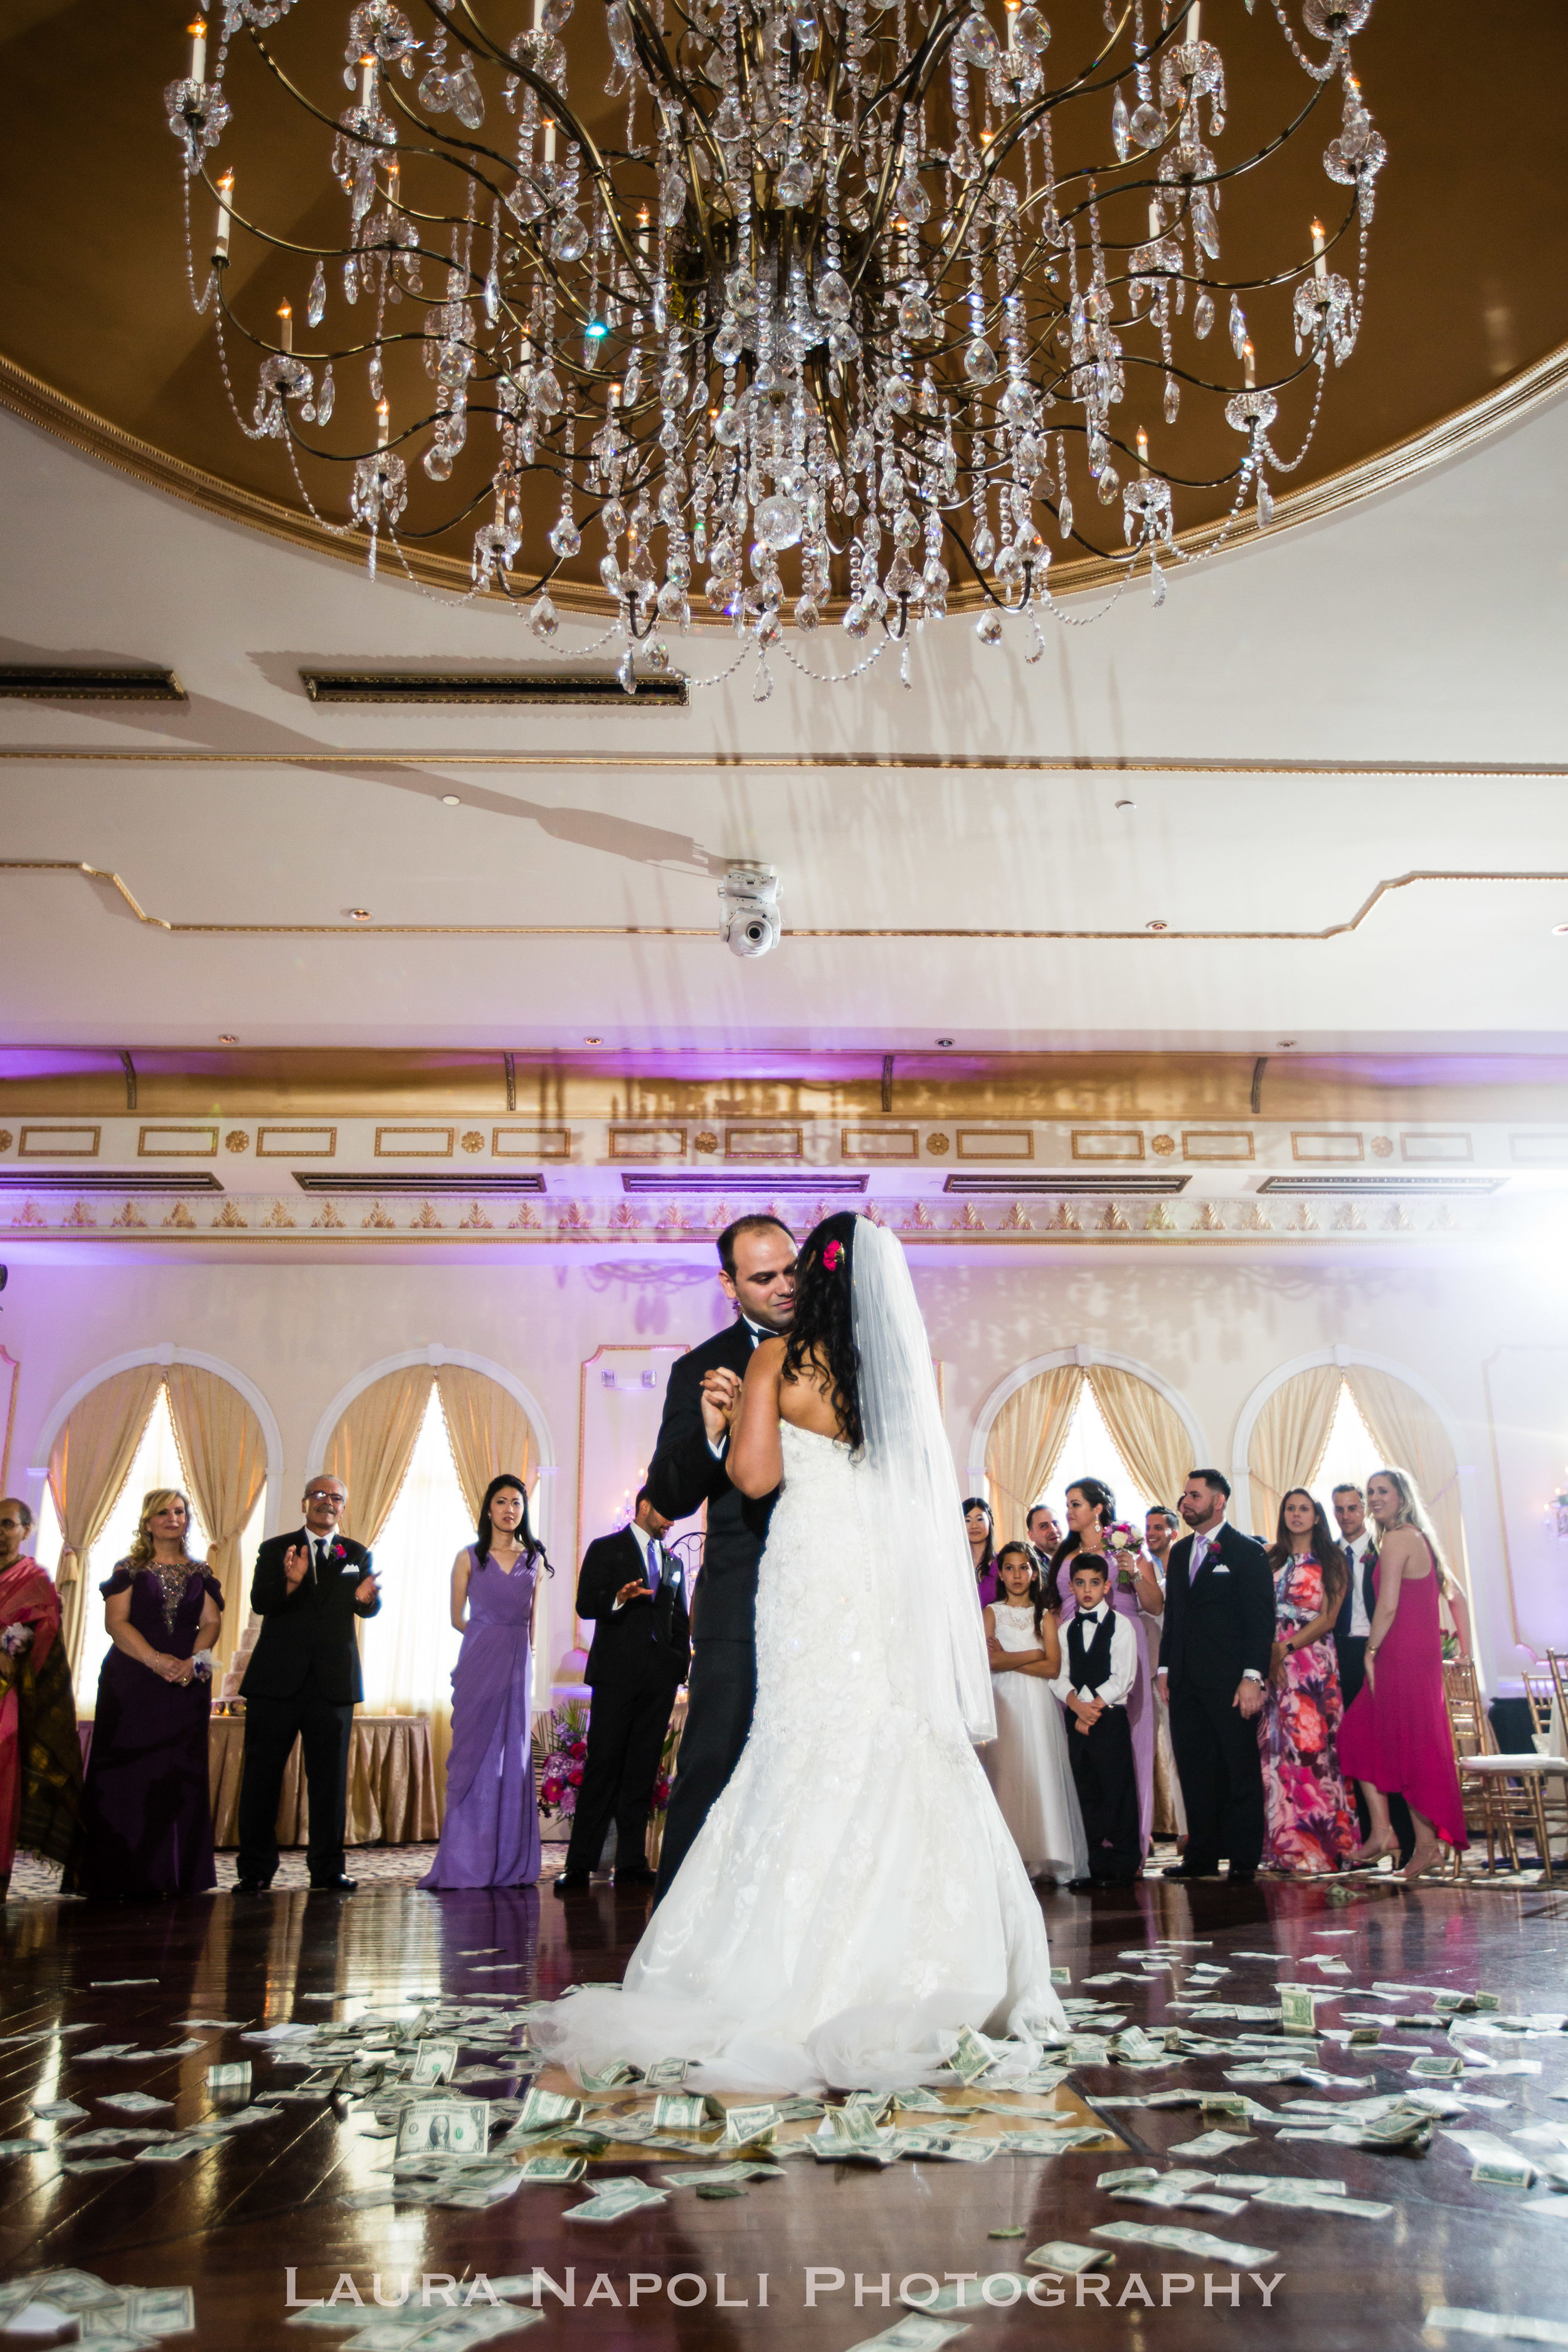 Scotlandrungolfclubweddingsouthjerseyweddingphotographer -33.jpg